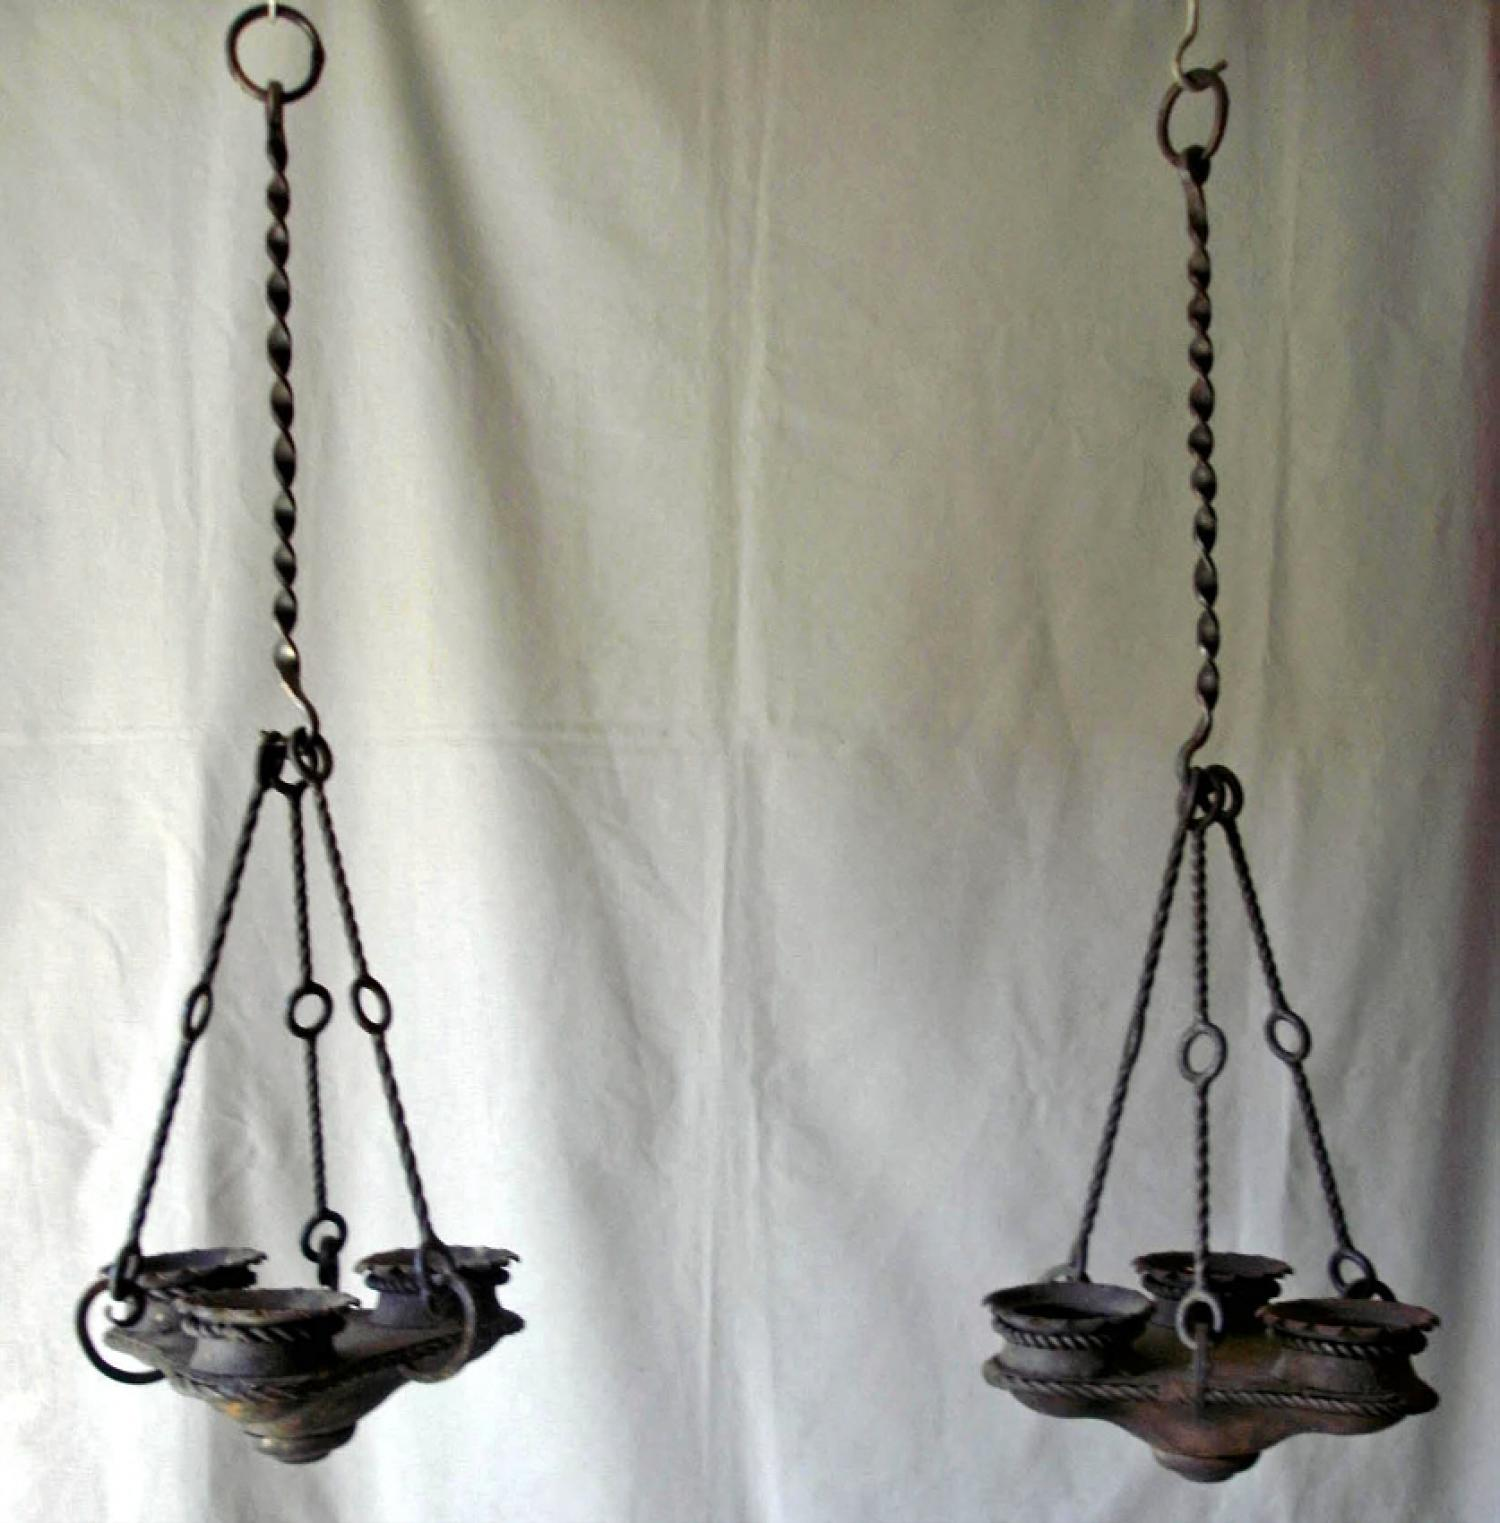 Hand crafted Addison Mizner School wrought iron lanterns c1920